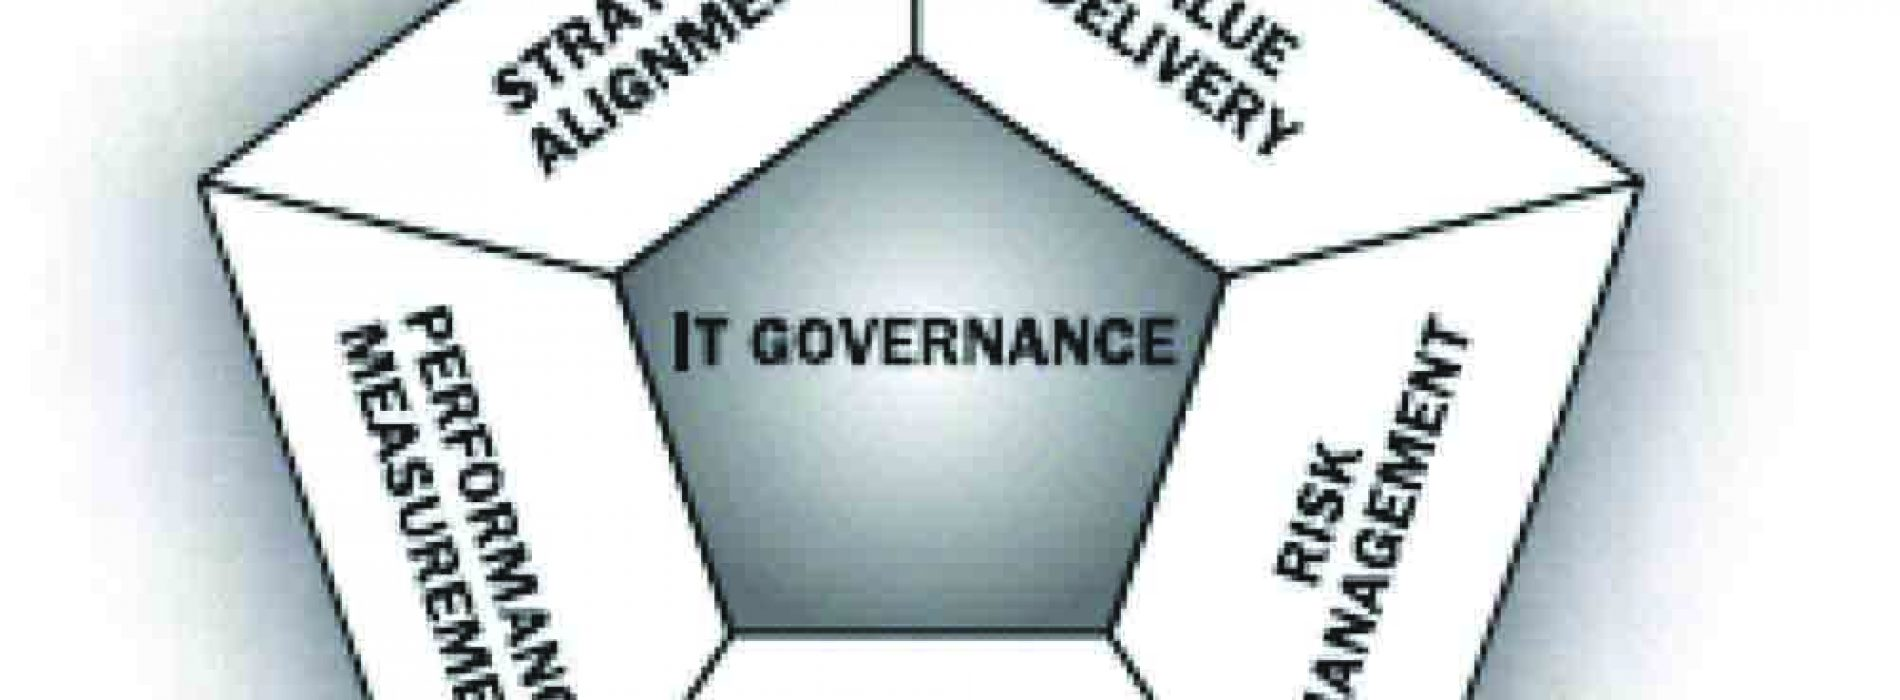 Importance of IT governance in corporate governance